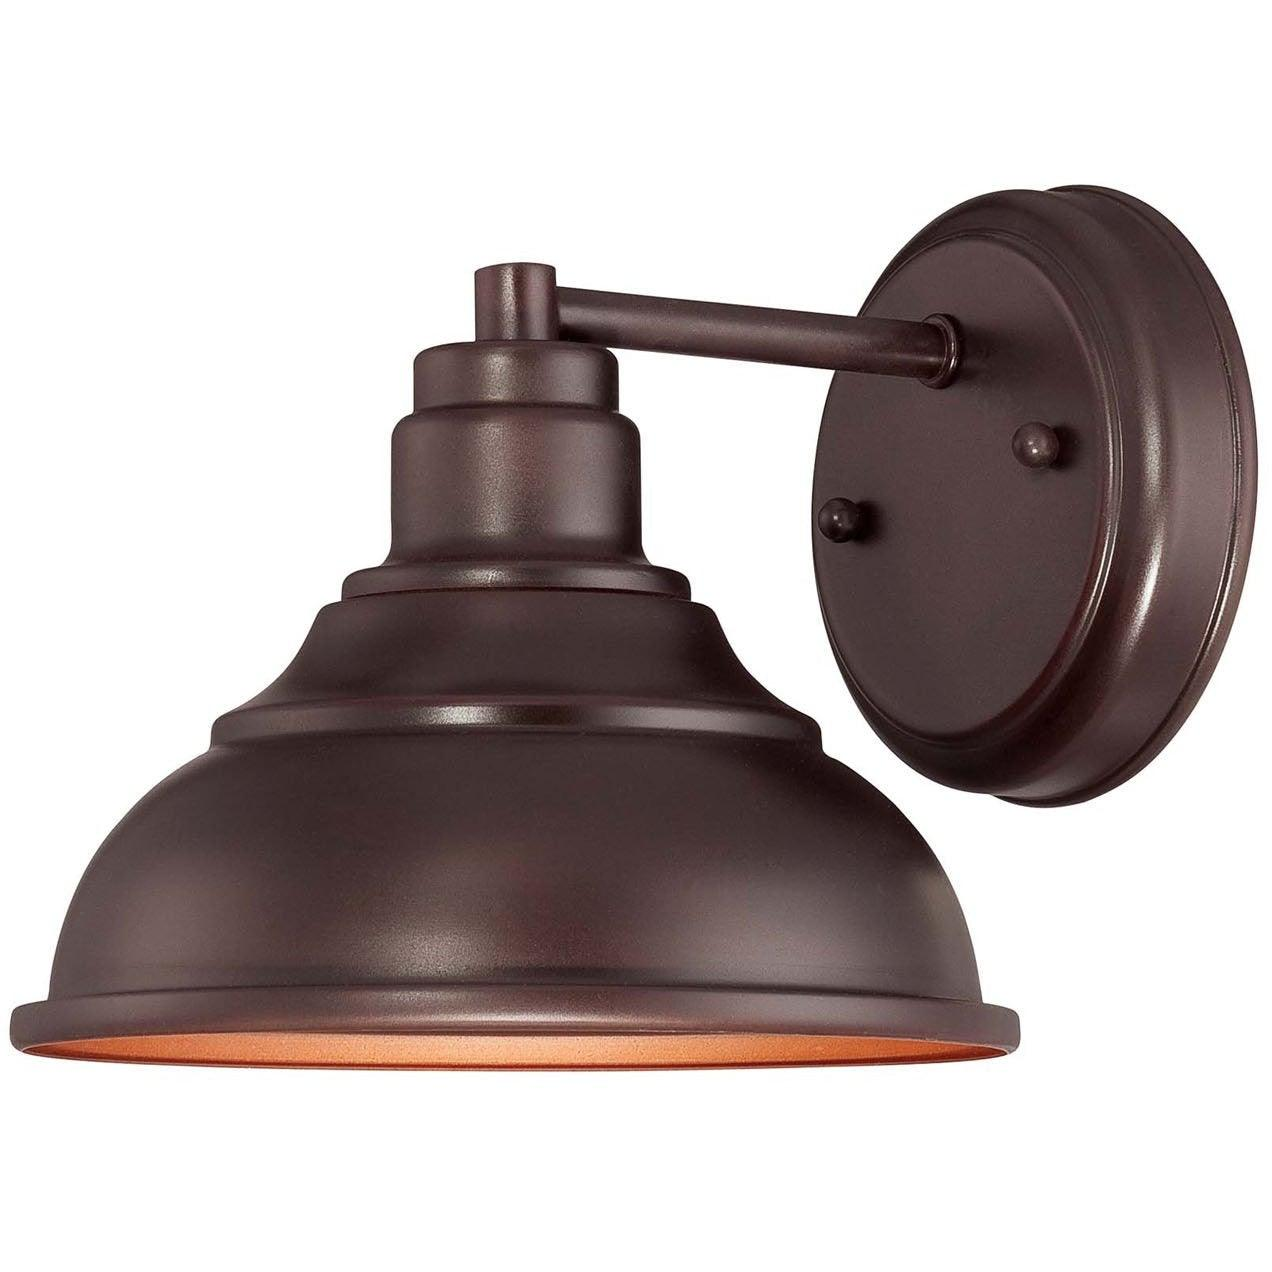 Savoy House - 5-5630-DS-13 - One Light Wall Mount - Dunston DS - English Bronze